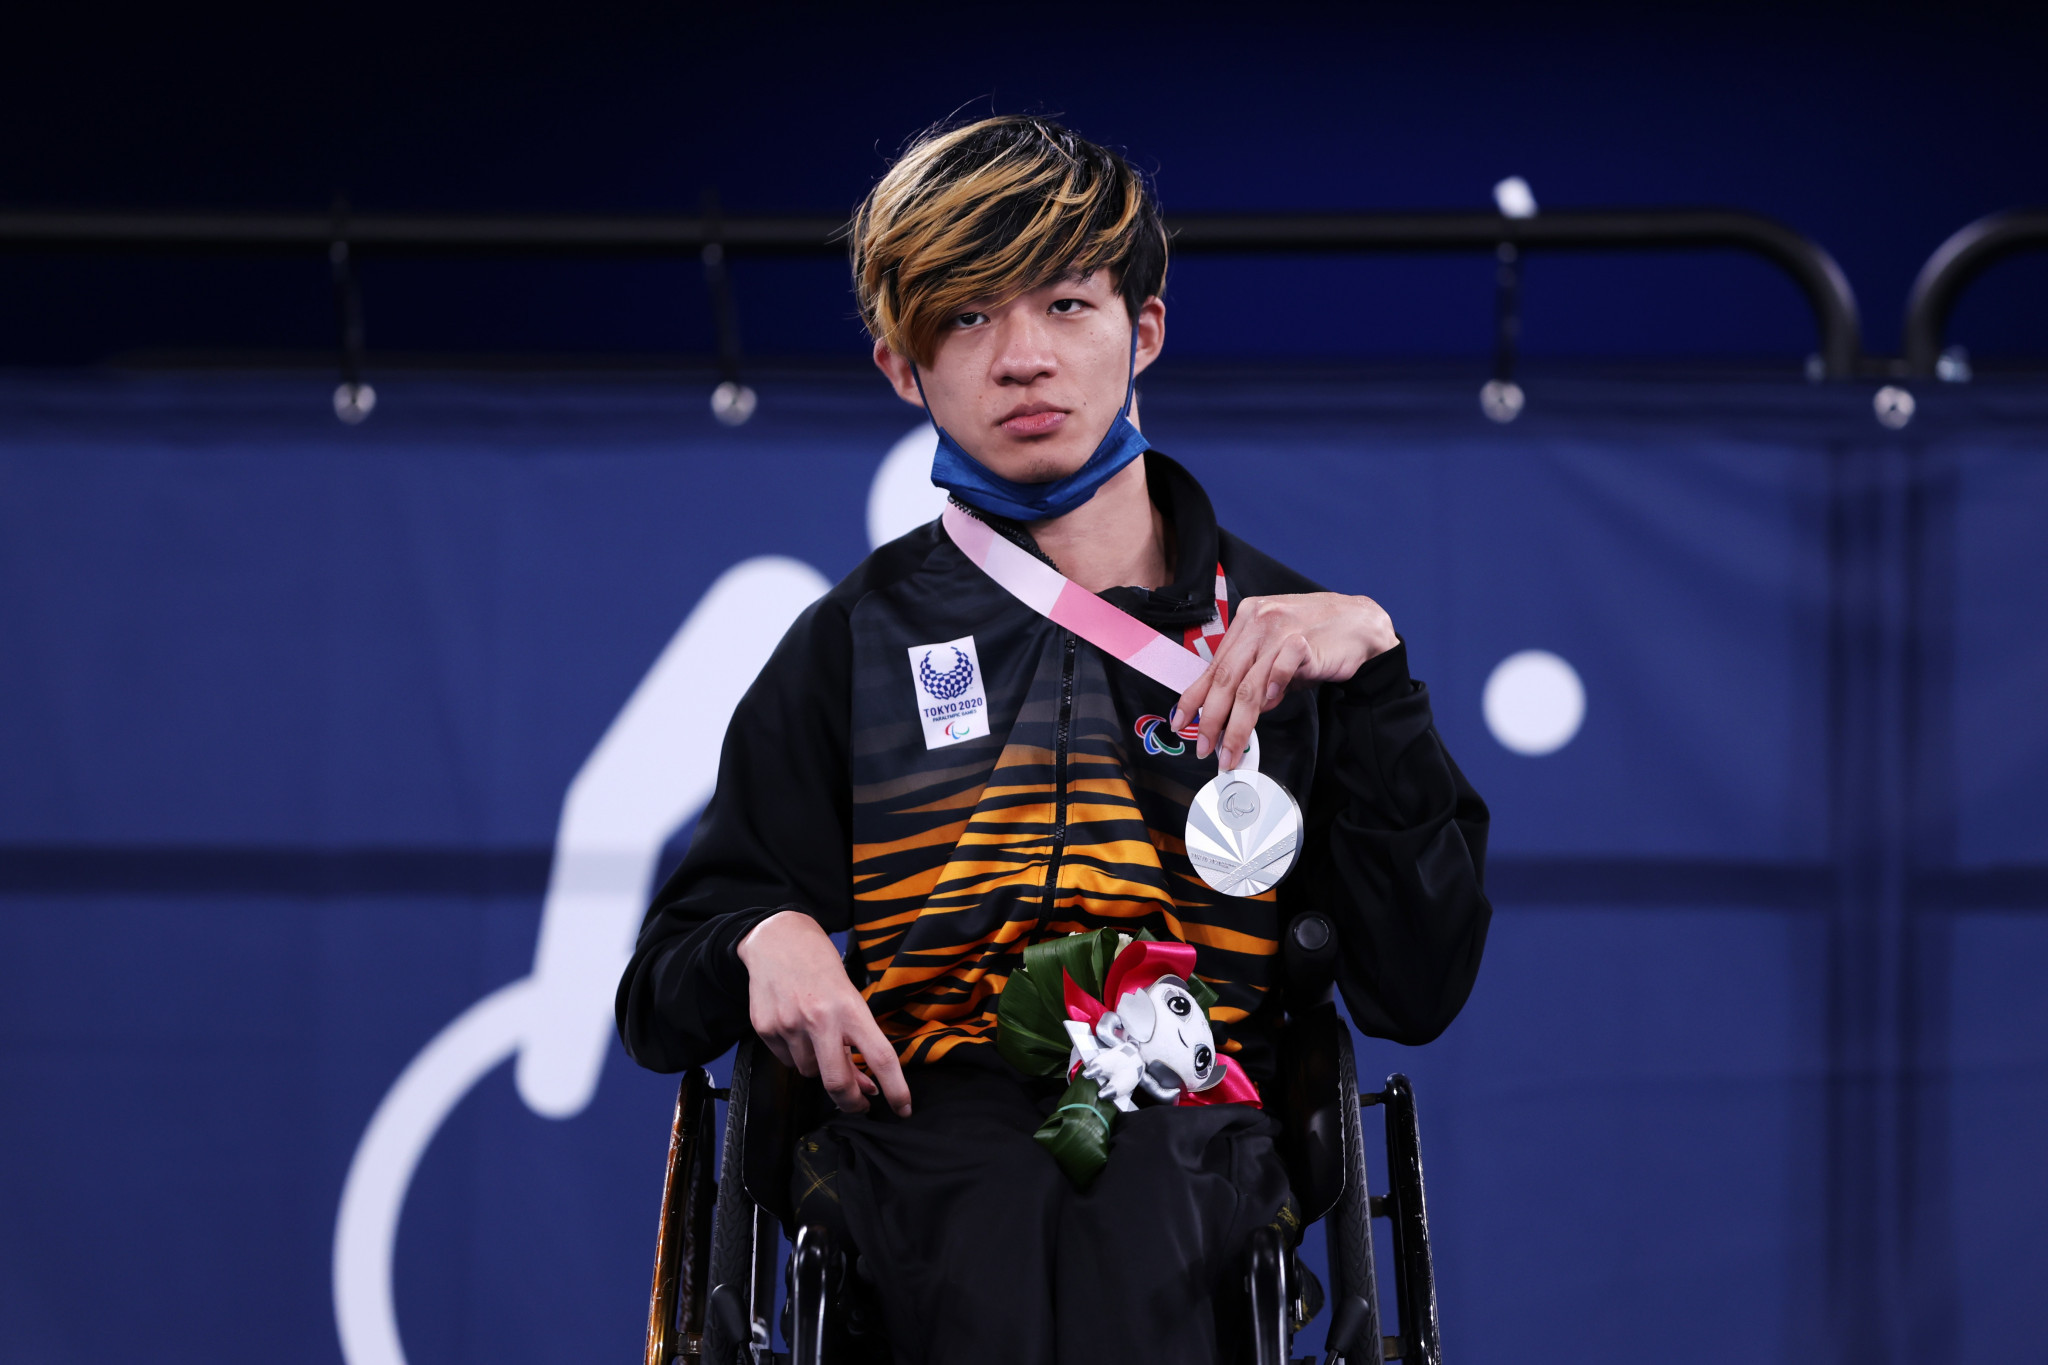 Malaysian boccia player receives cash prize after silver at Tokyo 2020 Paralympics